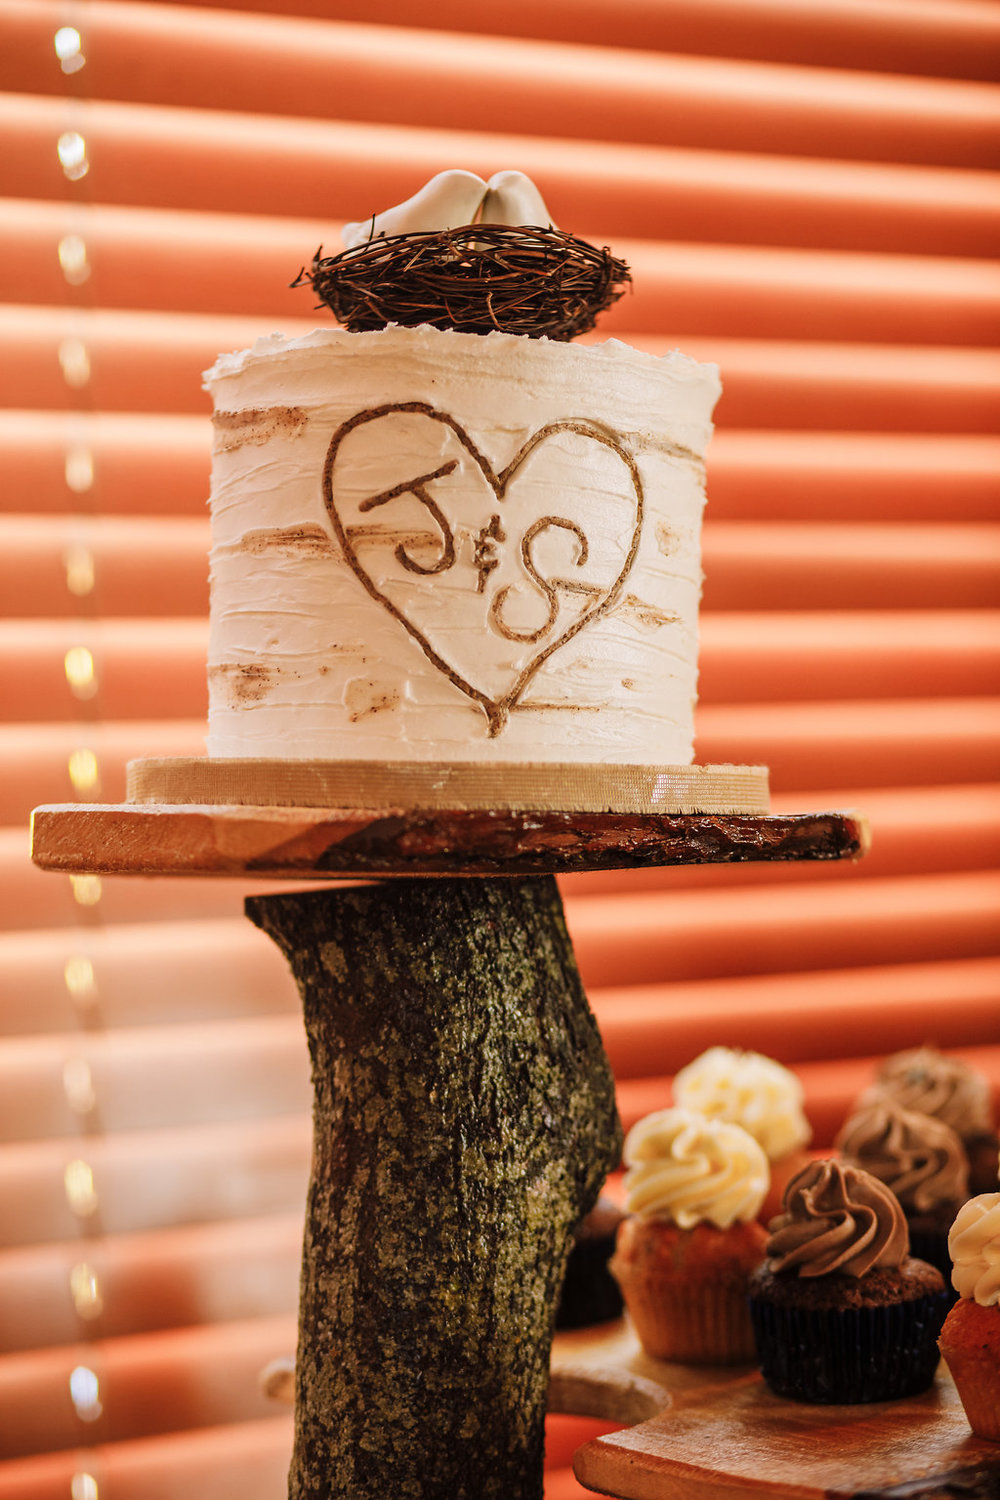 brielle-davis-events-photography-by-brea-linganore-winery-james-sarah-wedding-mini-wedding-cake.jpg